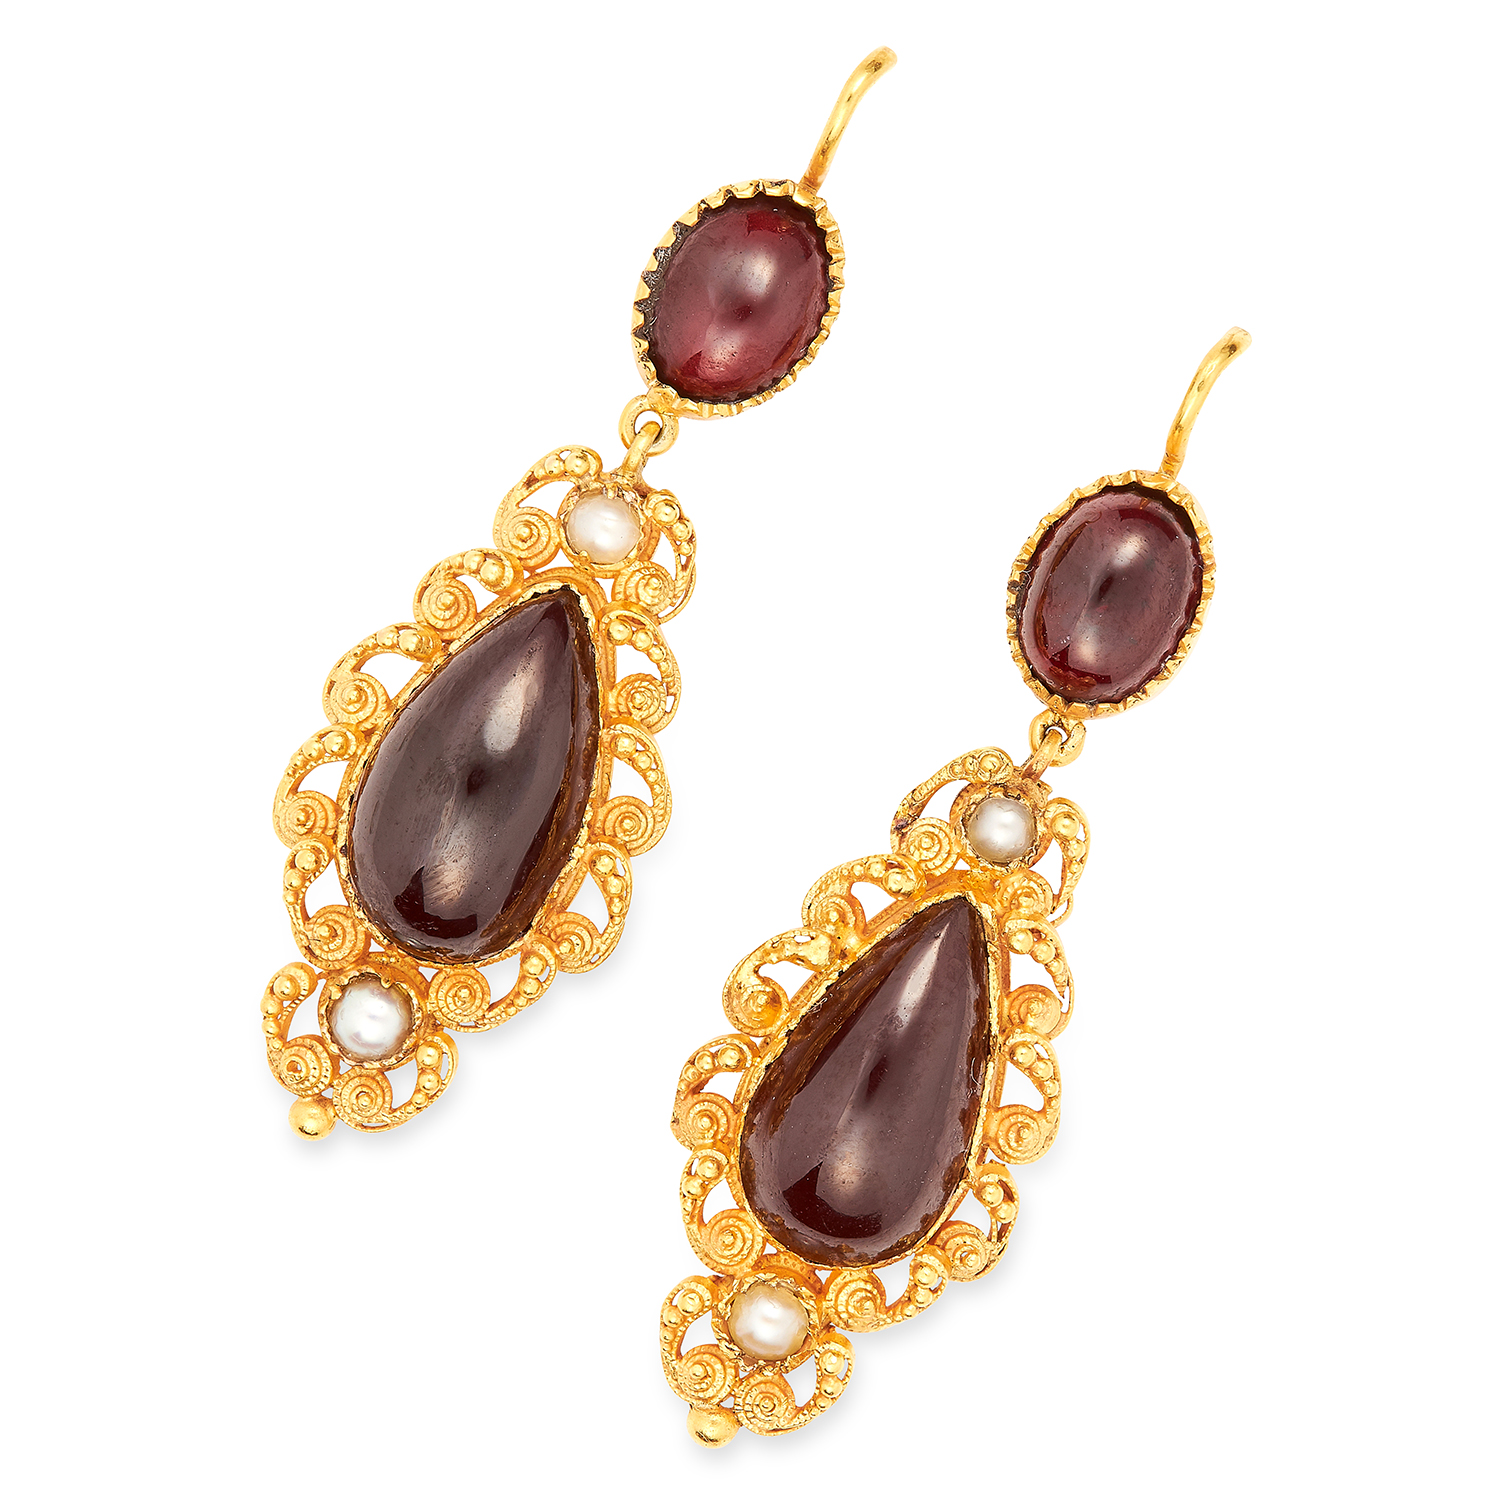 ANTIQUE VICTORIAN GARNET AND PEARL EARRINGS in high carat yellow gold, each set with two cabochon